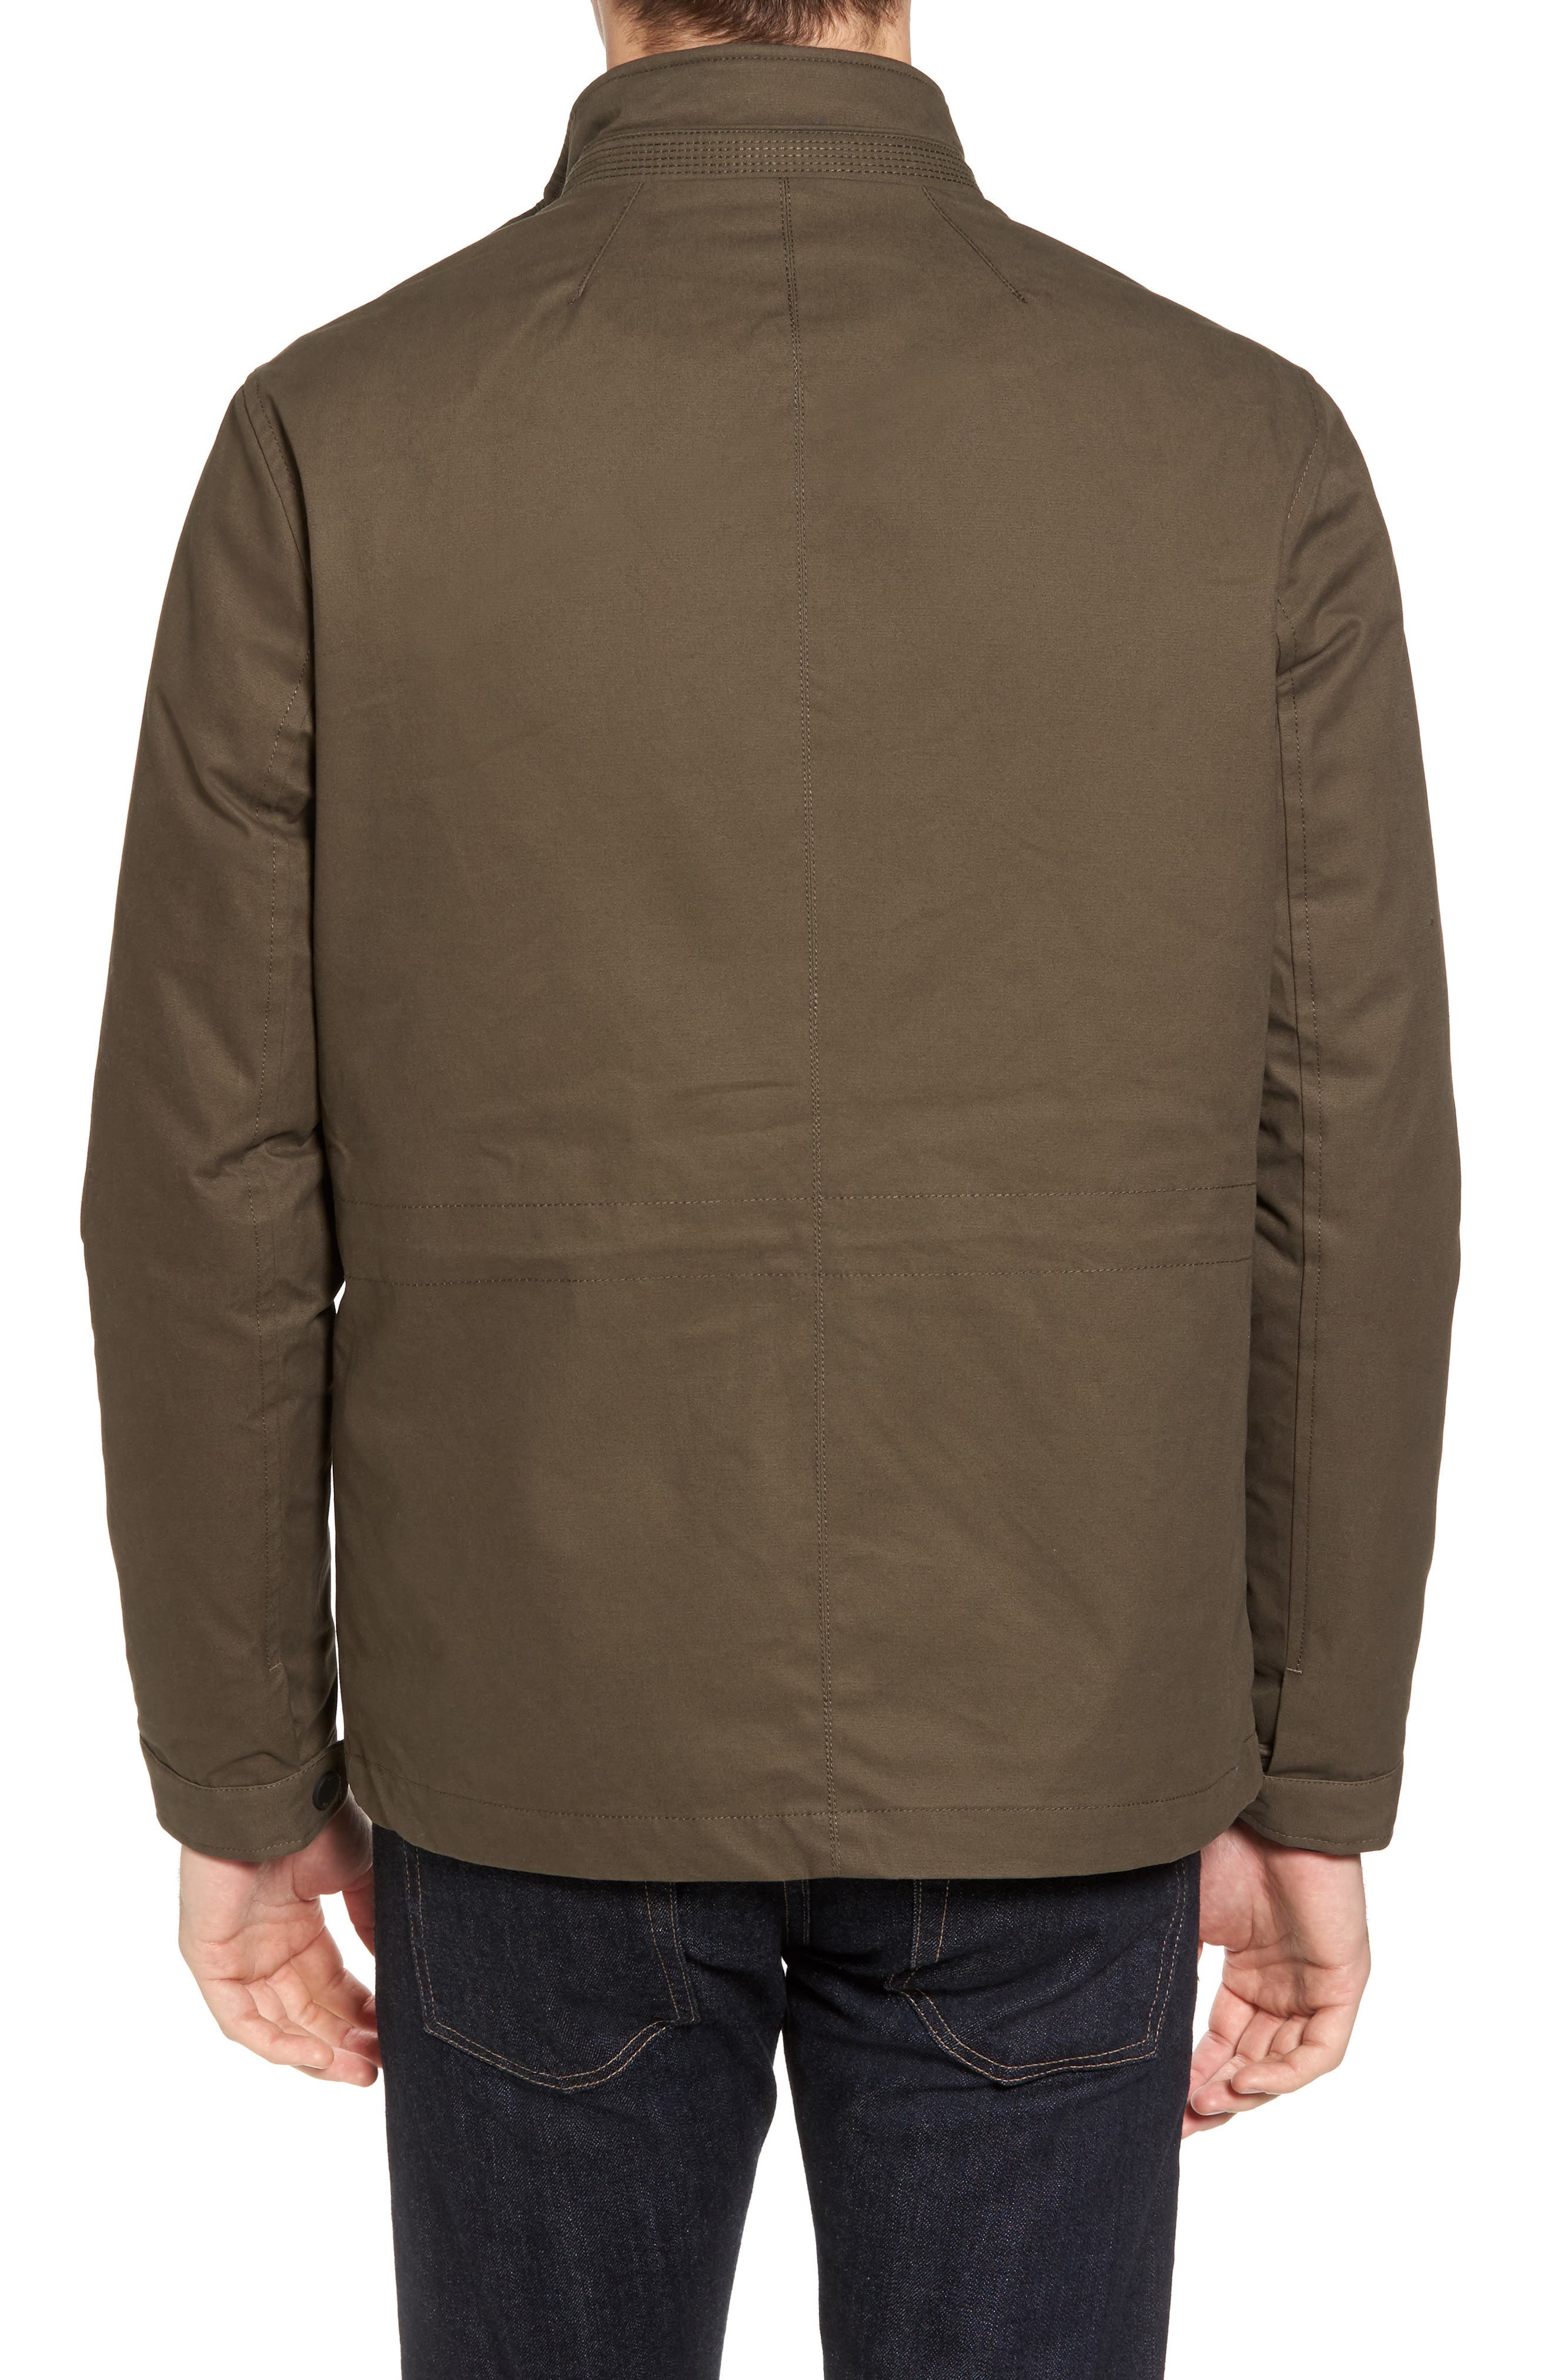 Nilson Trim Fit Quilted Field Jacket,                             Alternate thumbnail 2, color,                             312